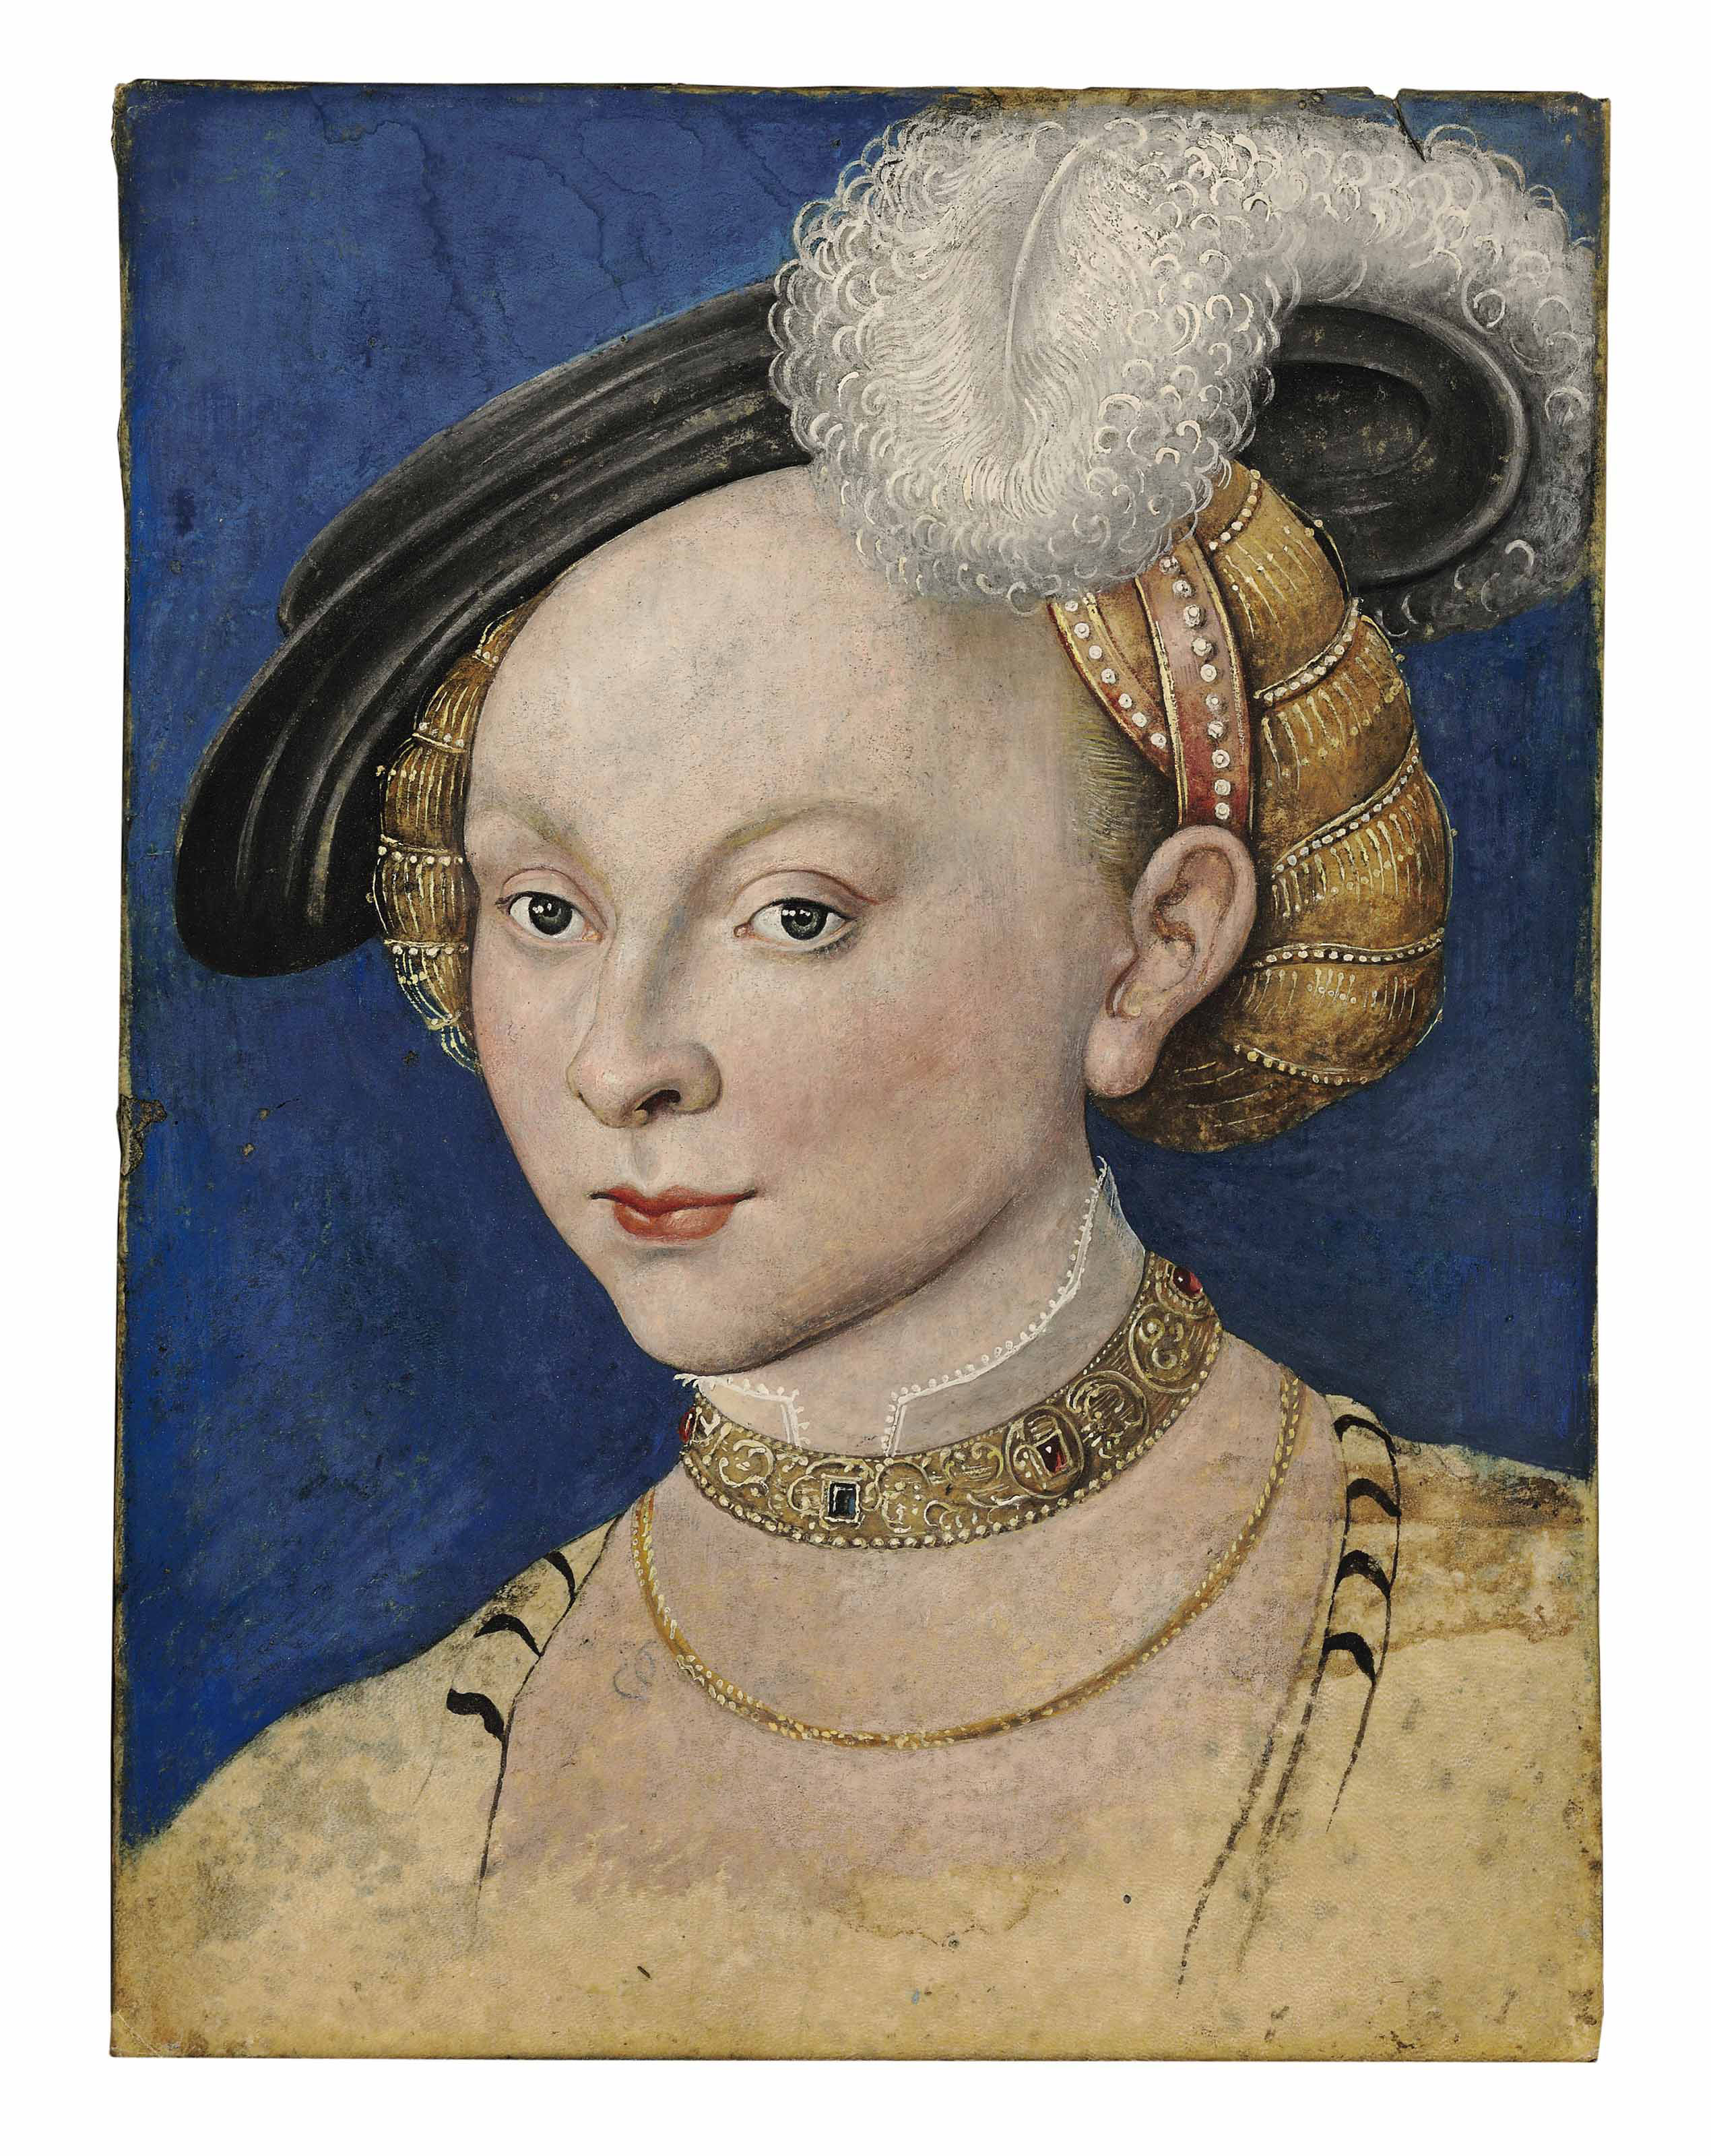 Attributed to Lucas Cranach th